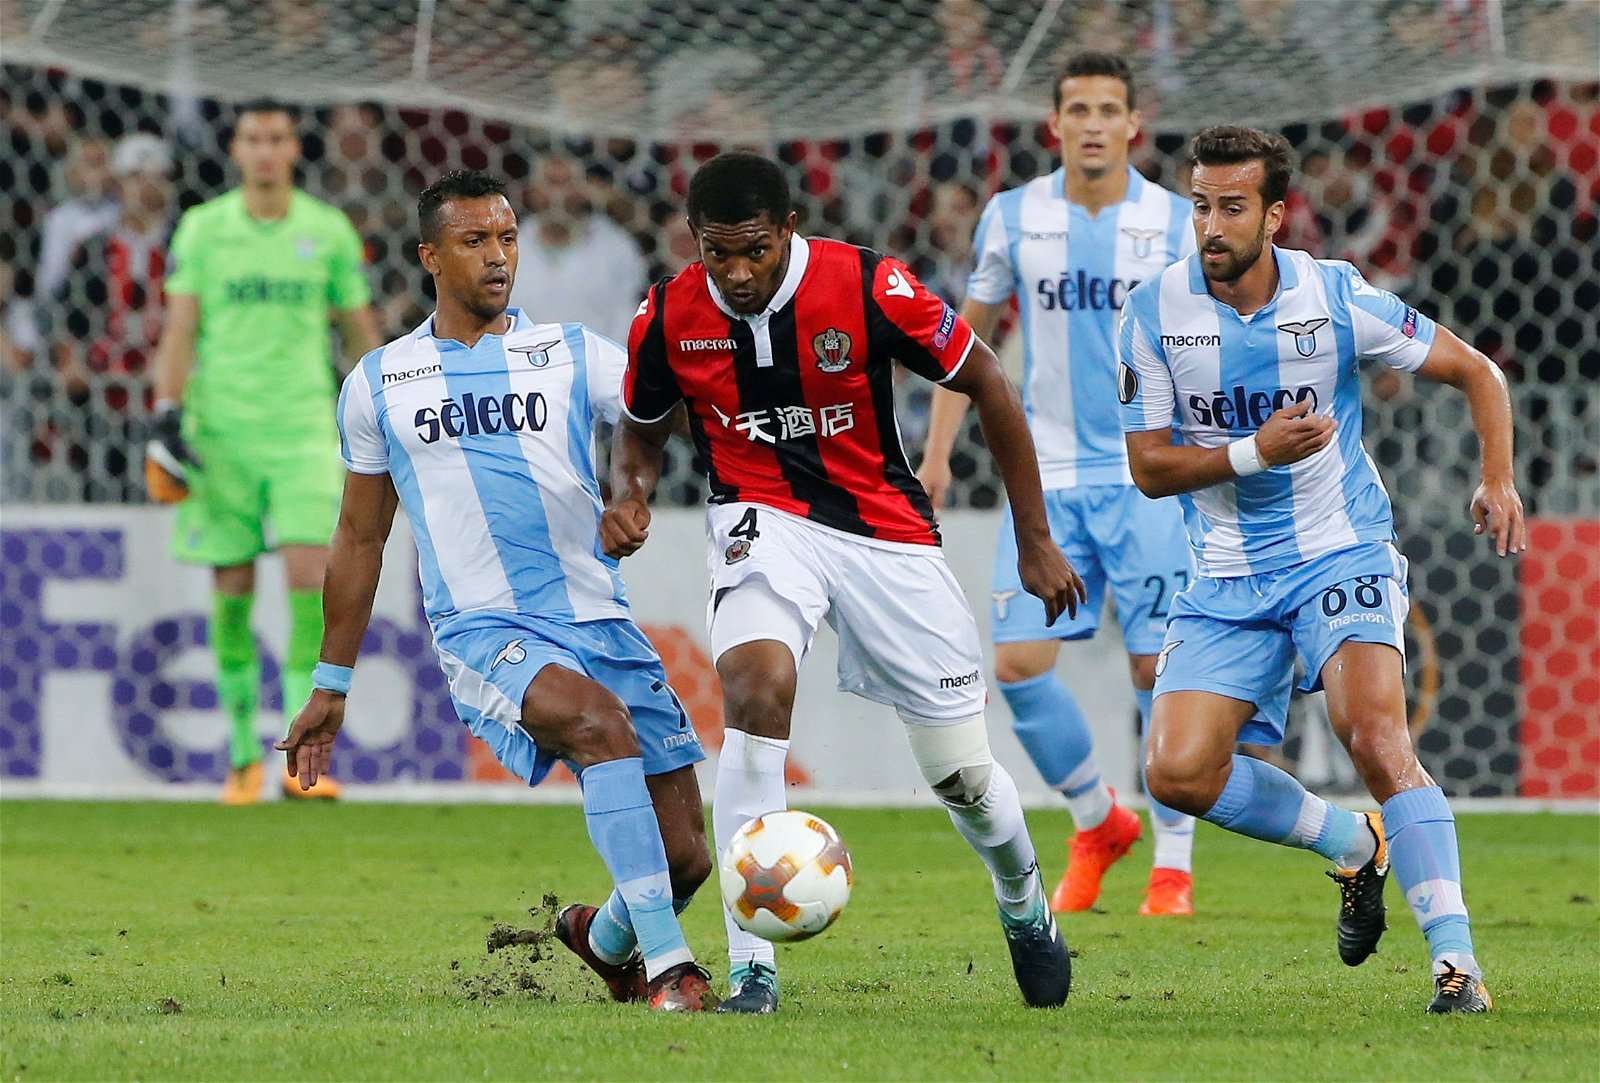 Marlon in action for Nice